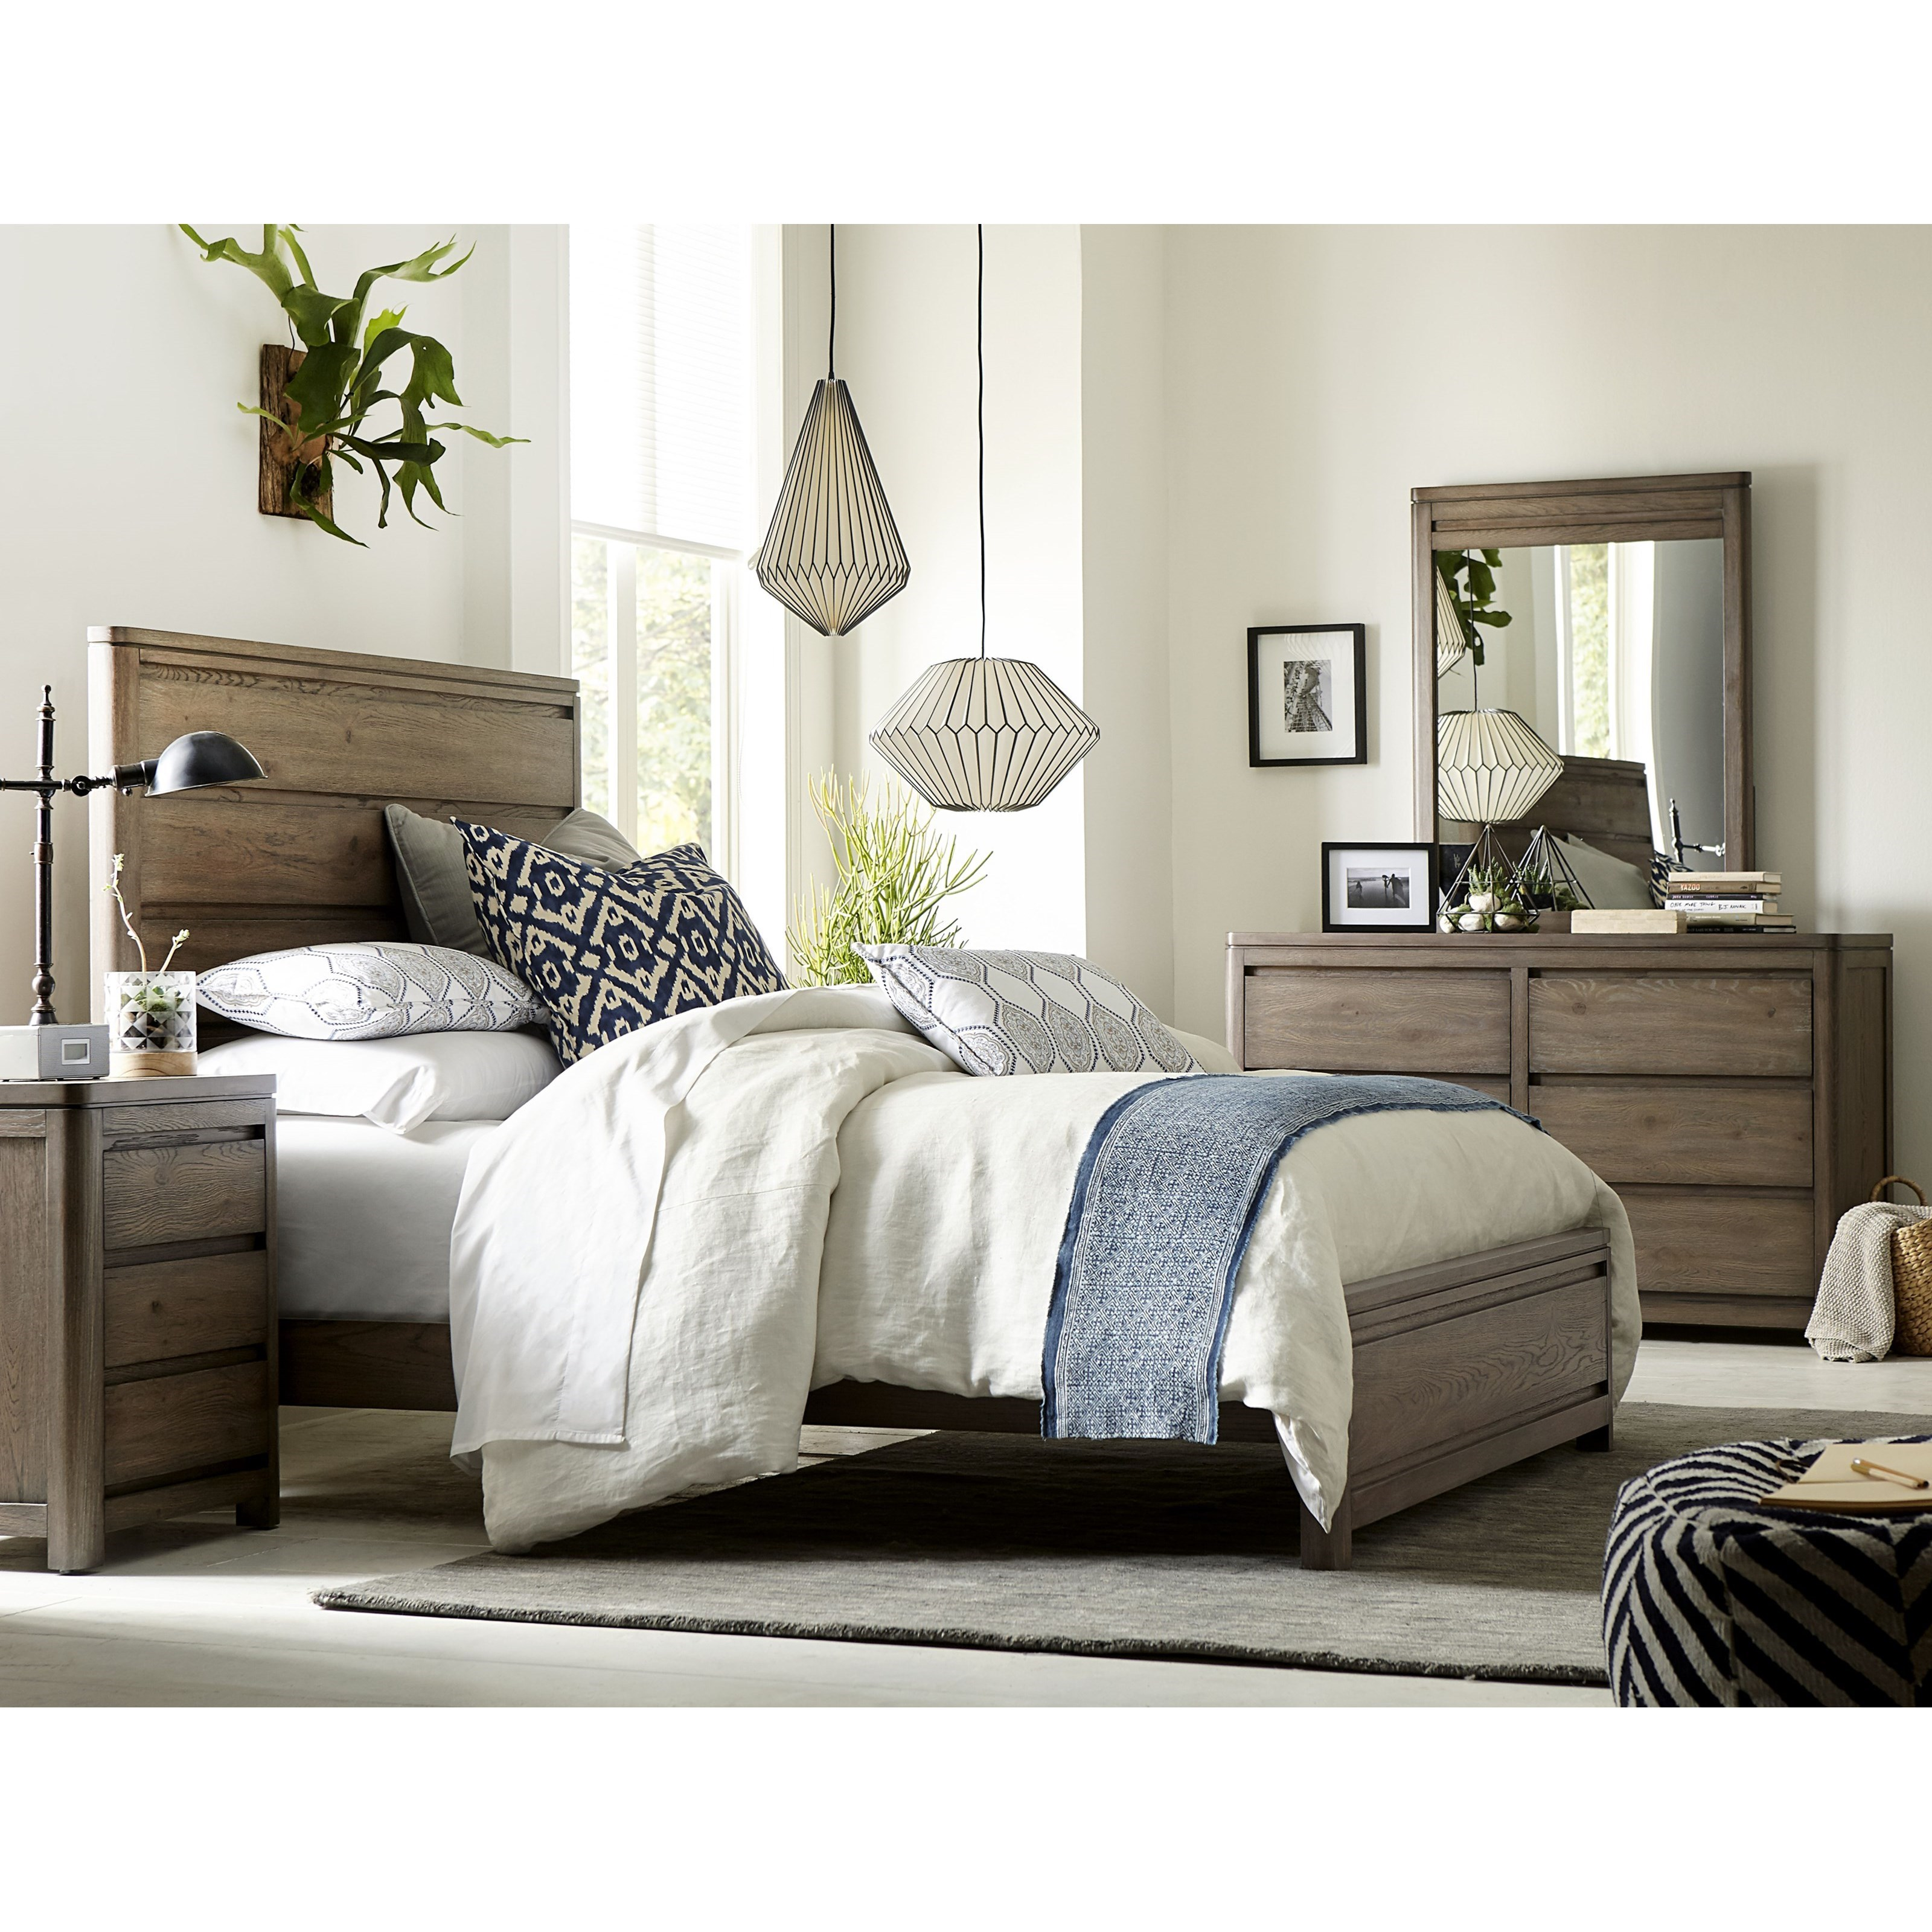 Legacy Classic Kids Big Sky by Wendy Bellissimo Queen Bedroom Group - Item Number: 6810 Q Bedroom Group 1